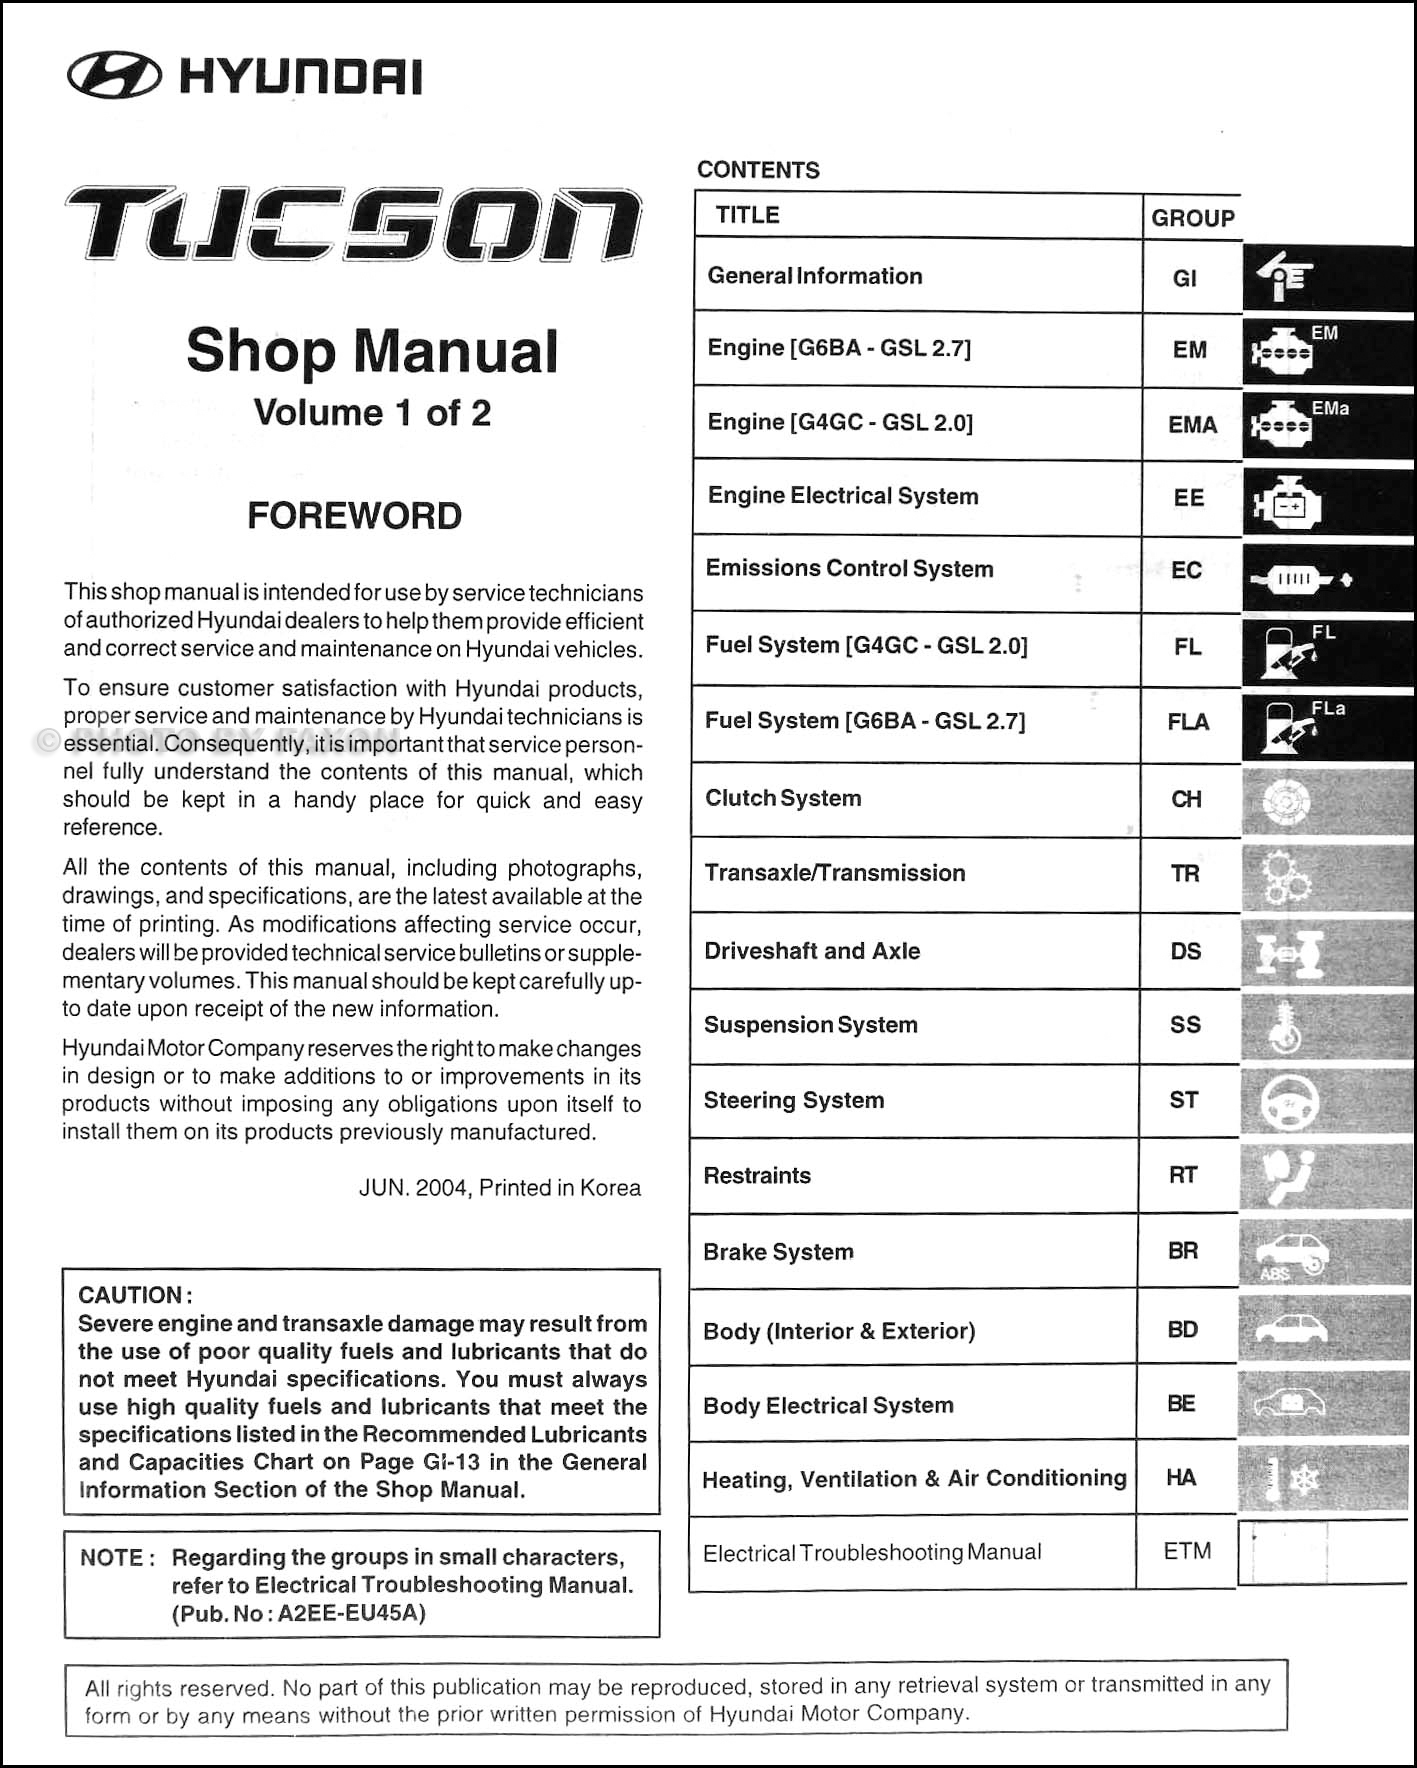 Hyundai Tucson Wiring Diagram Pdf Diagrams Engine 2005 Tuscon Harness In Store 43 Auto Charger Bathroom Electrical